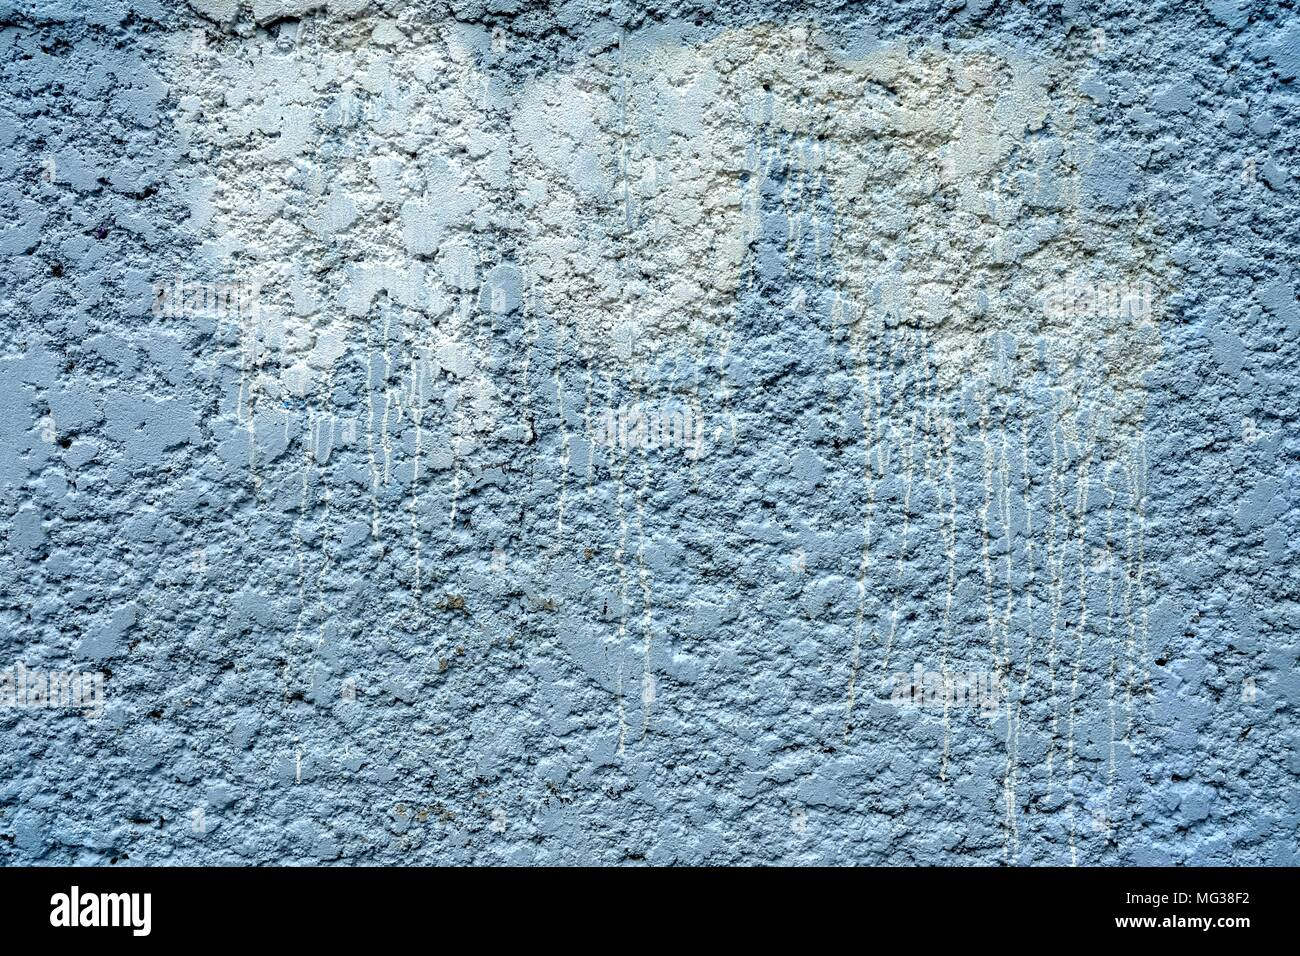 White Stain Of Spray Paint On Concrete Wall Background Stock